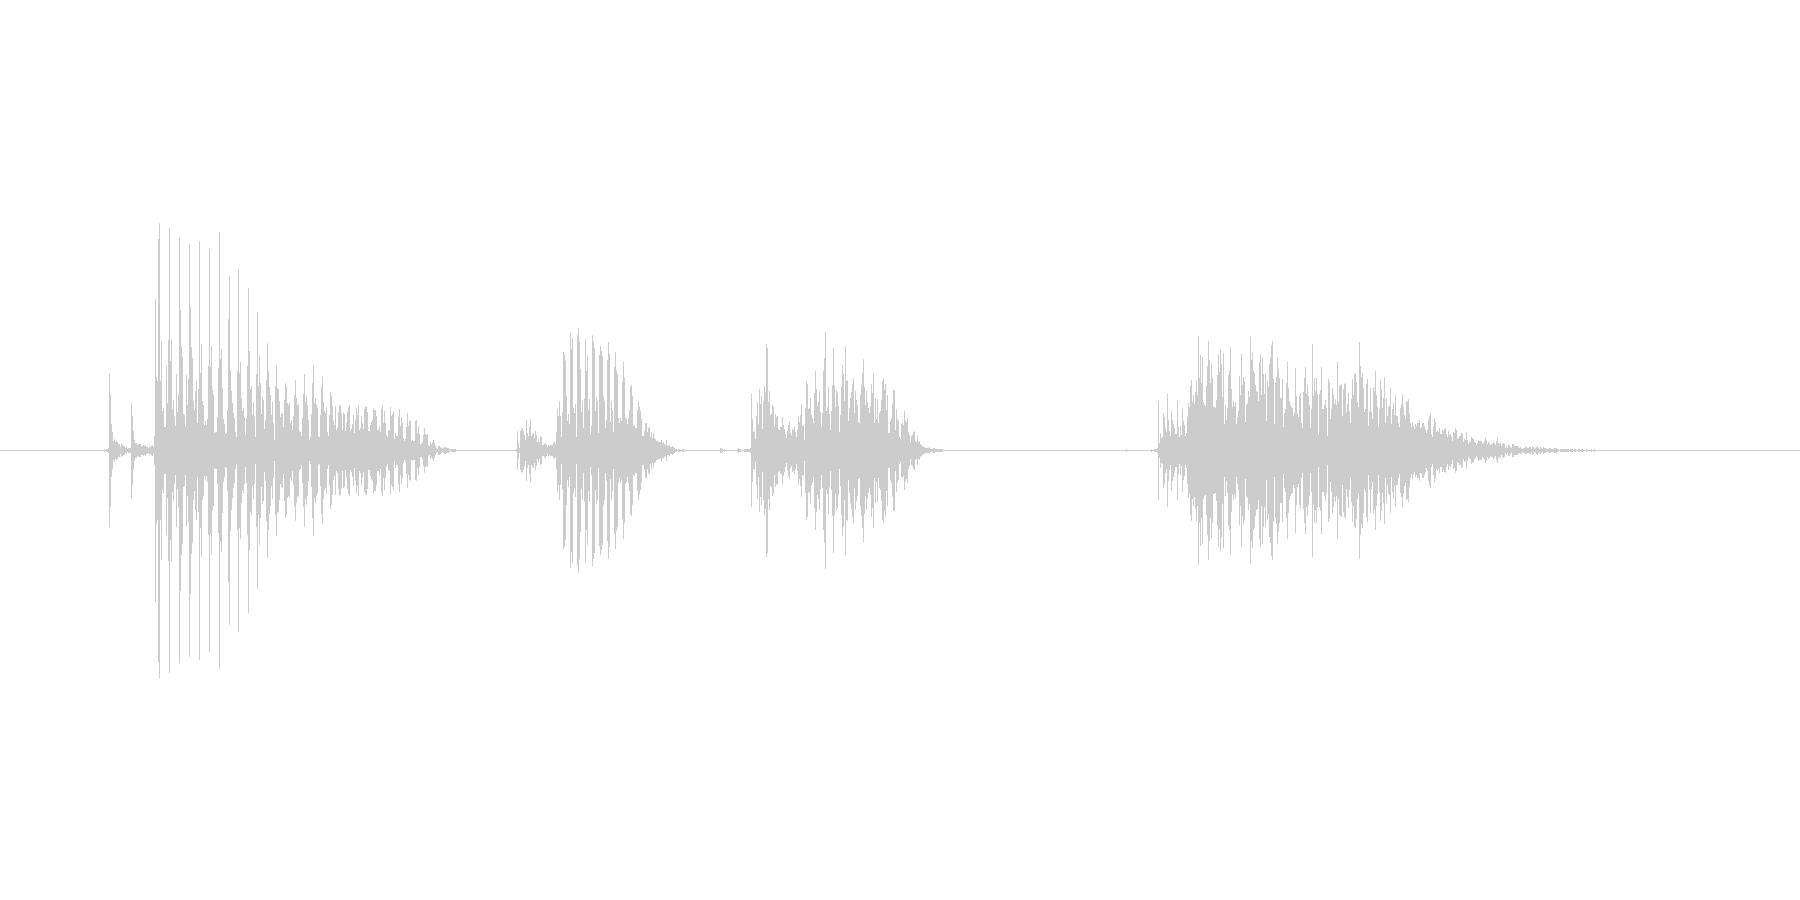 Did you want to meet (Woman)'s unreproduced waveform